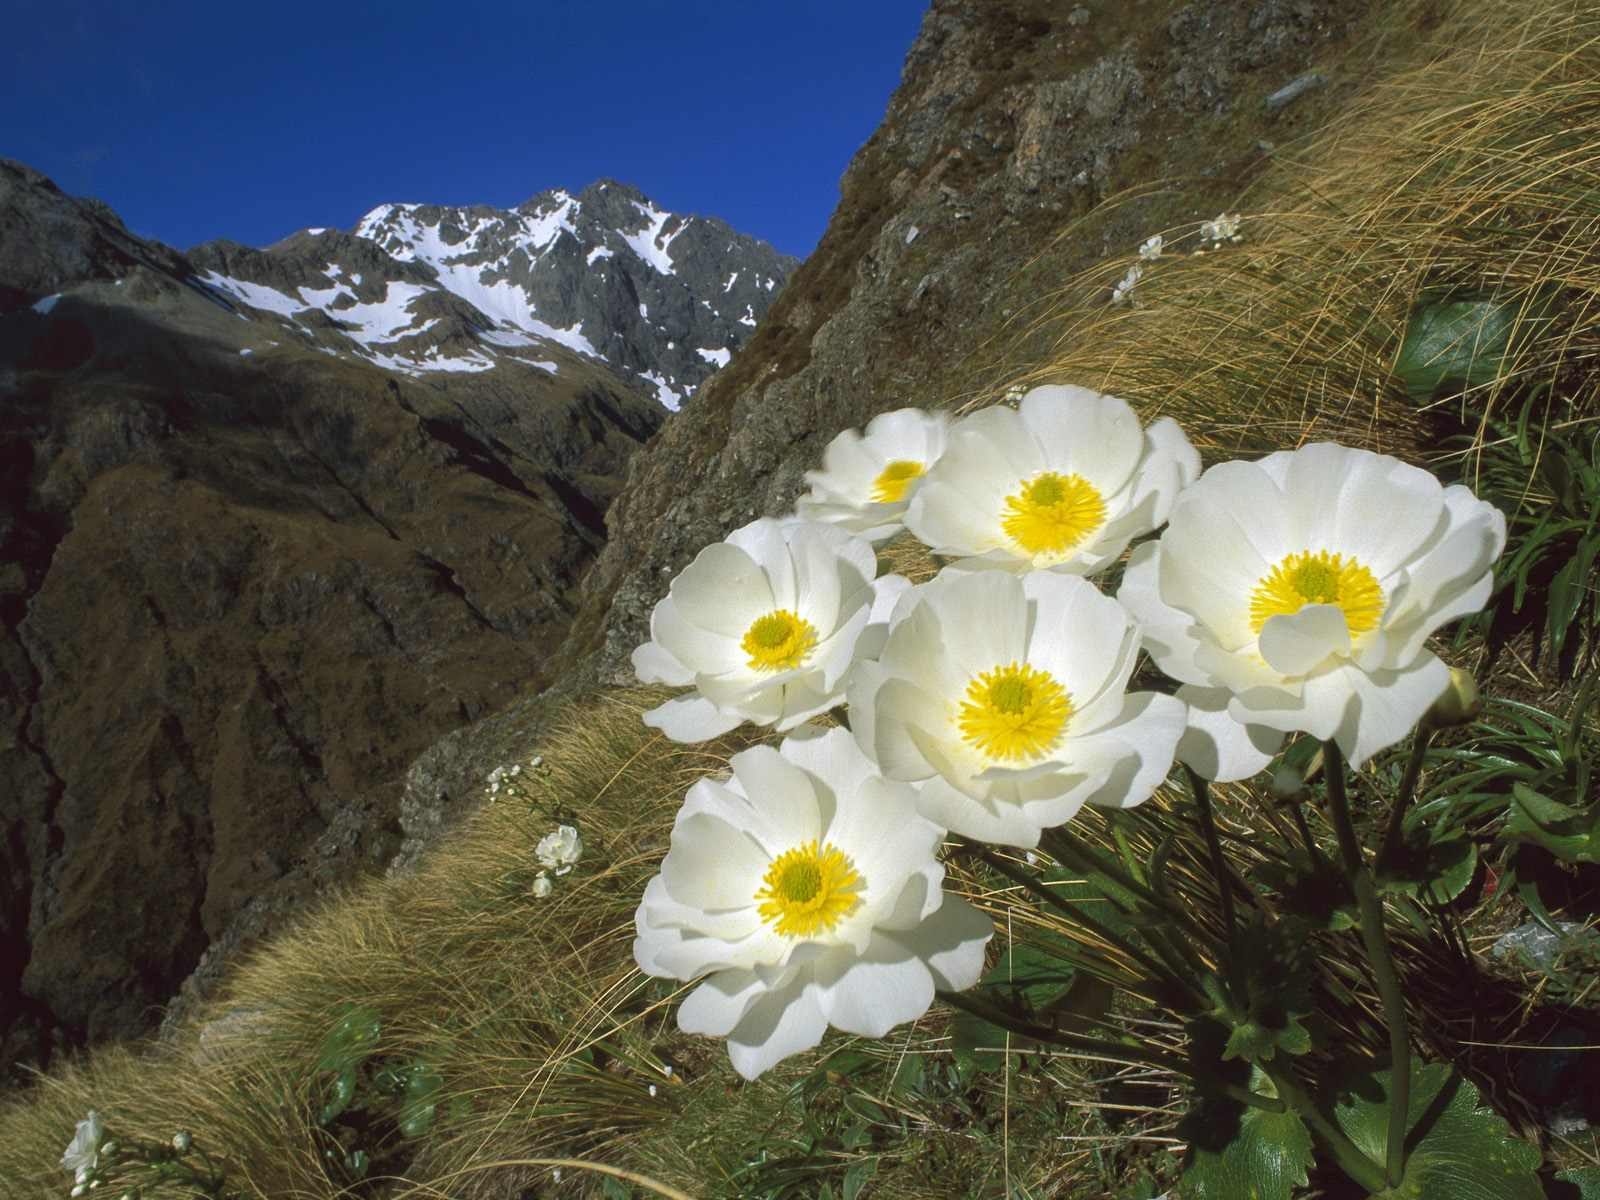 Mount_Cook_Buttercup_on_Mount_Rolleston_Arthur's_Pass_National_Park_New_Zealand